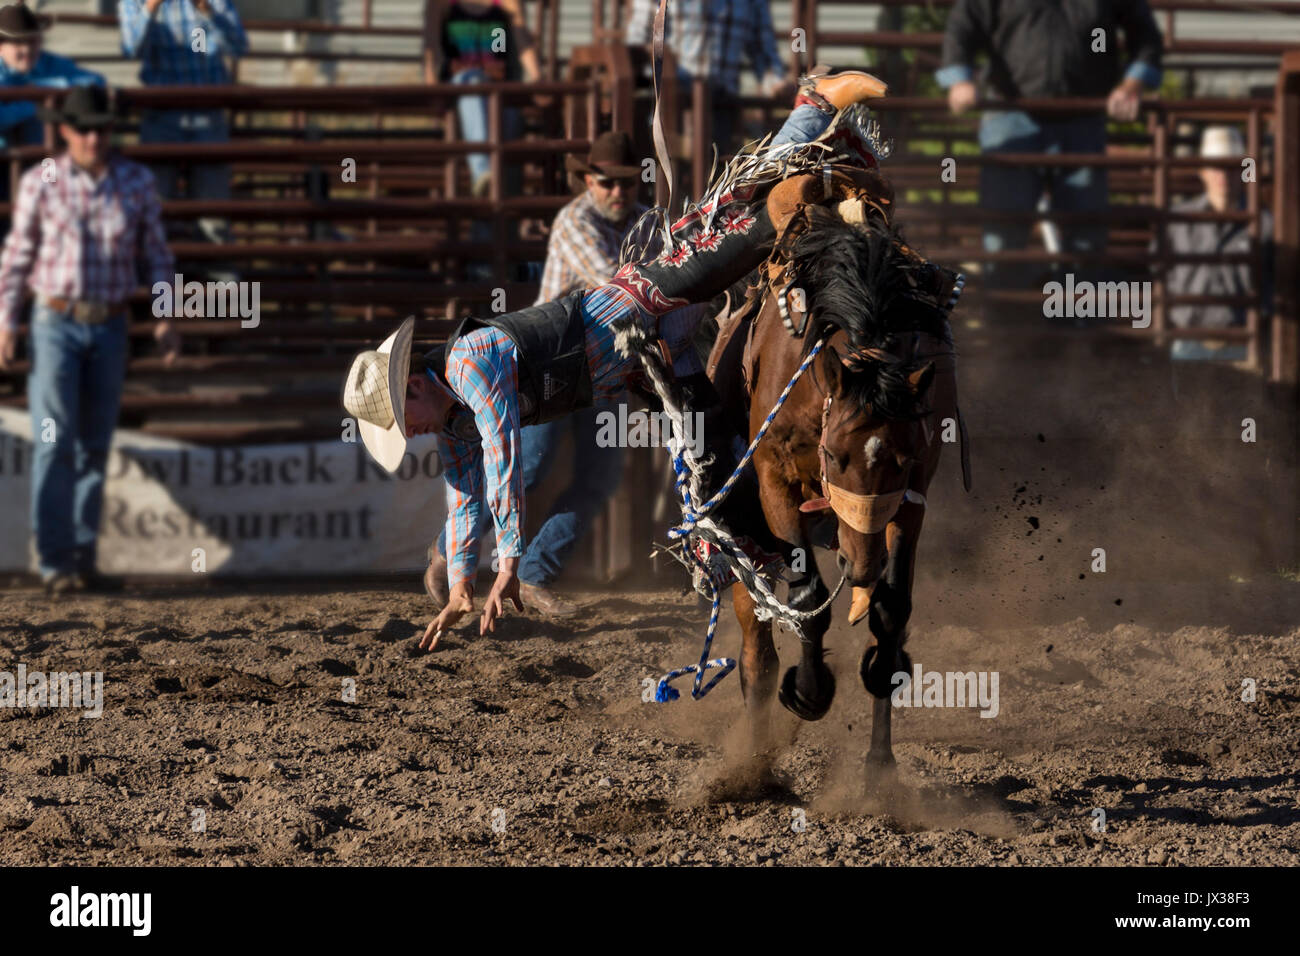 Bronc Riding Stock Photos Amp Bronc Riding Stock Images Alamy